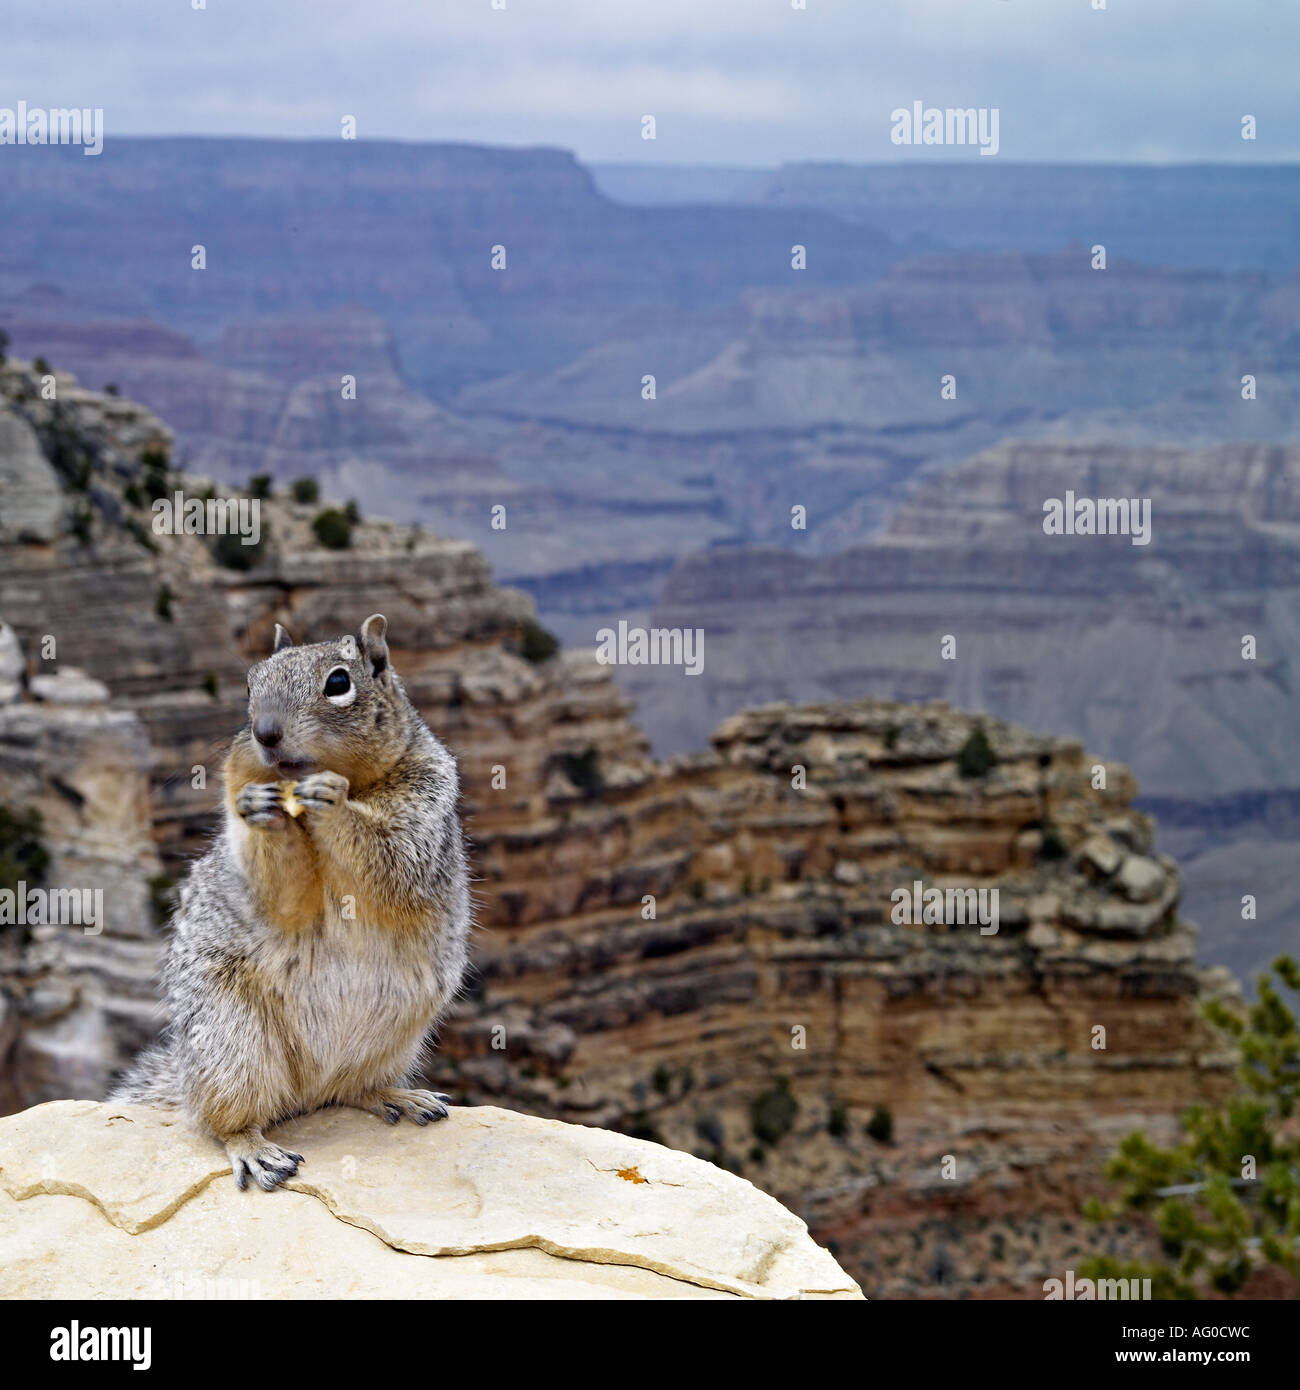 Squirrel in front of Grand Canyon view, Arizona - Stock Image